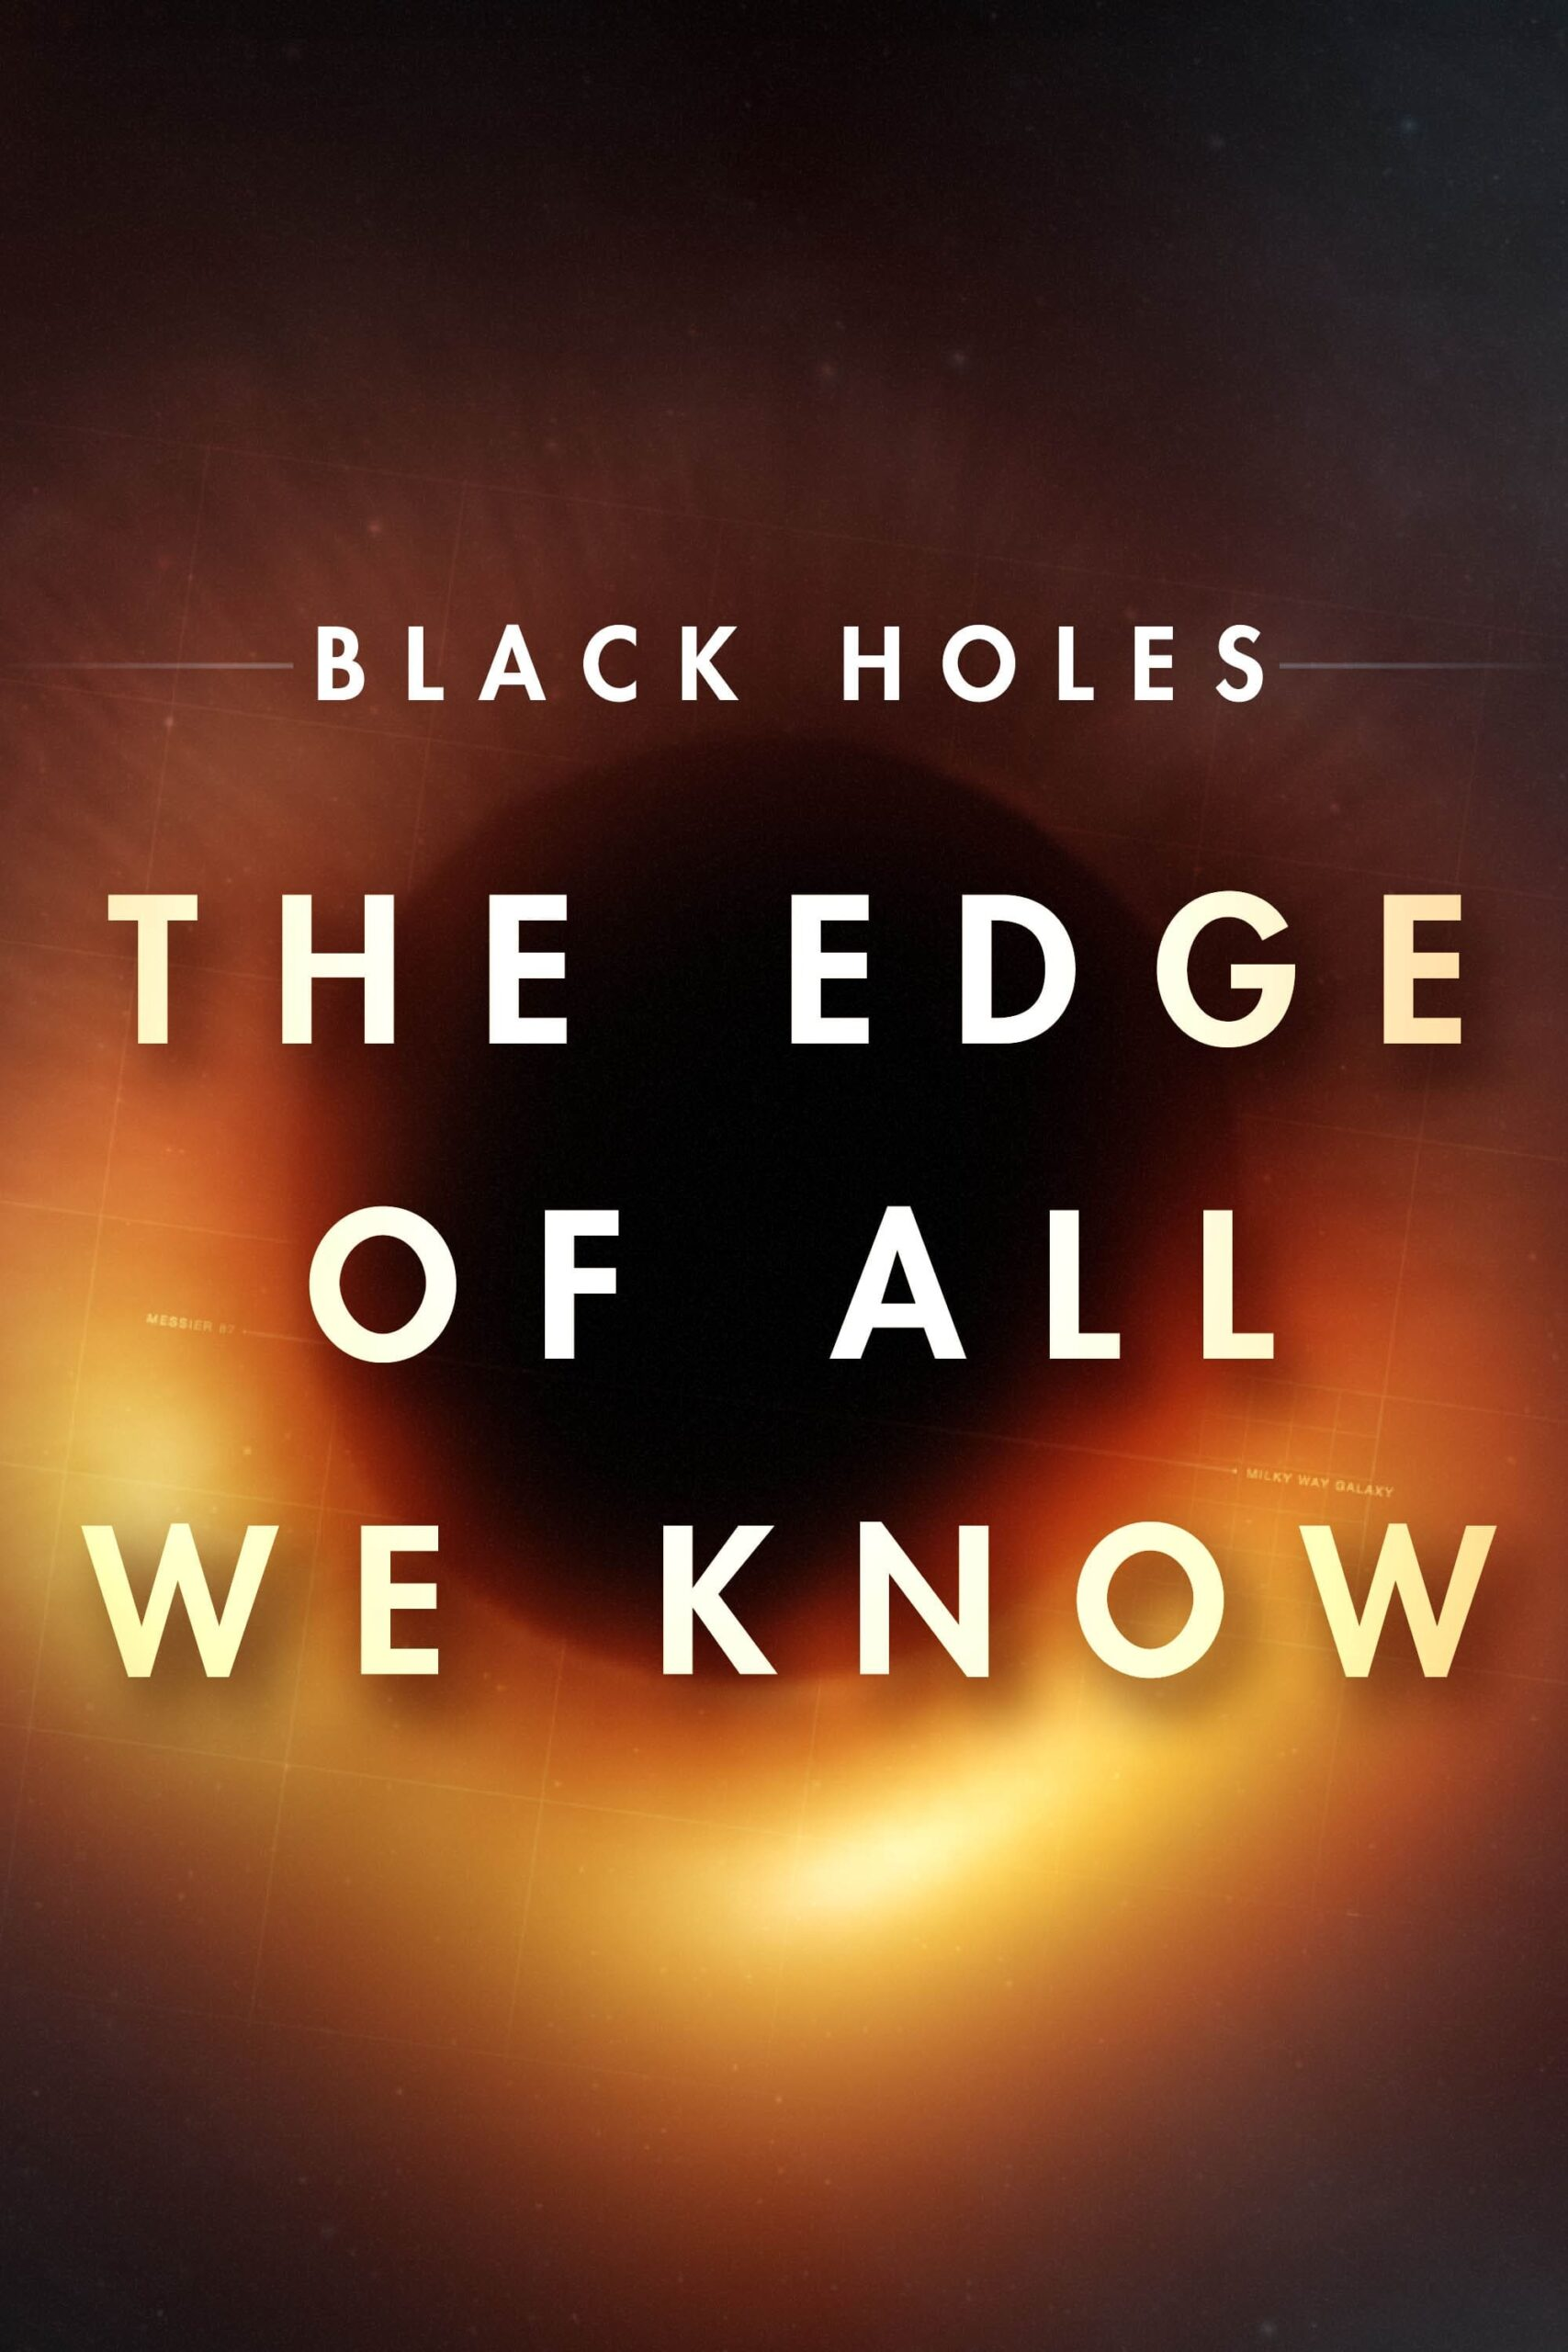 Watch Black Holes: The Edge of All We Know online now on Netflix cast review release date hero heroine hit or flop